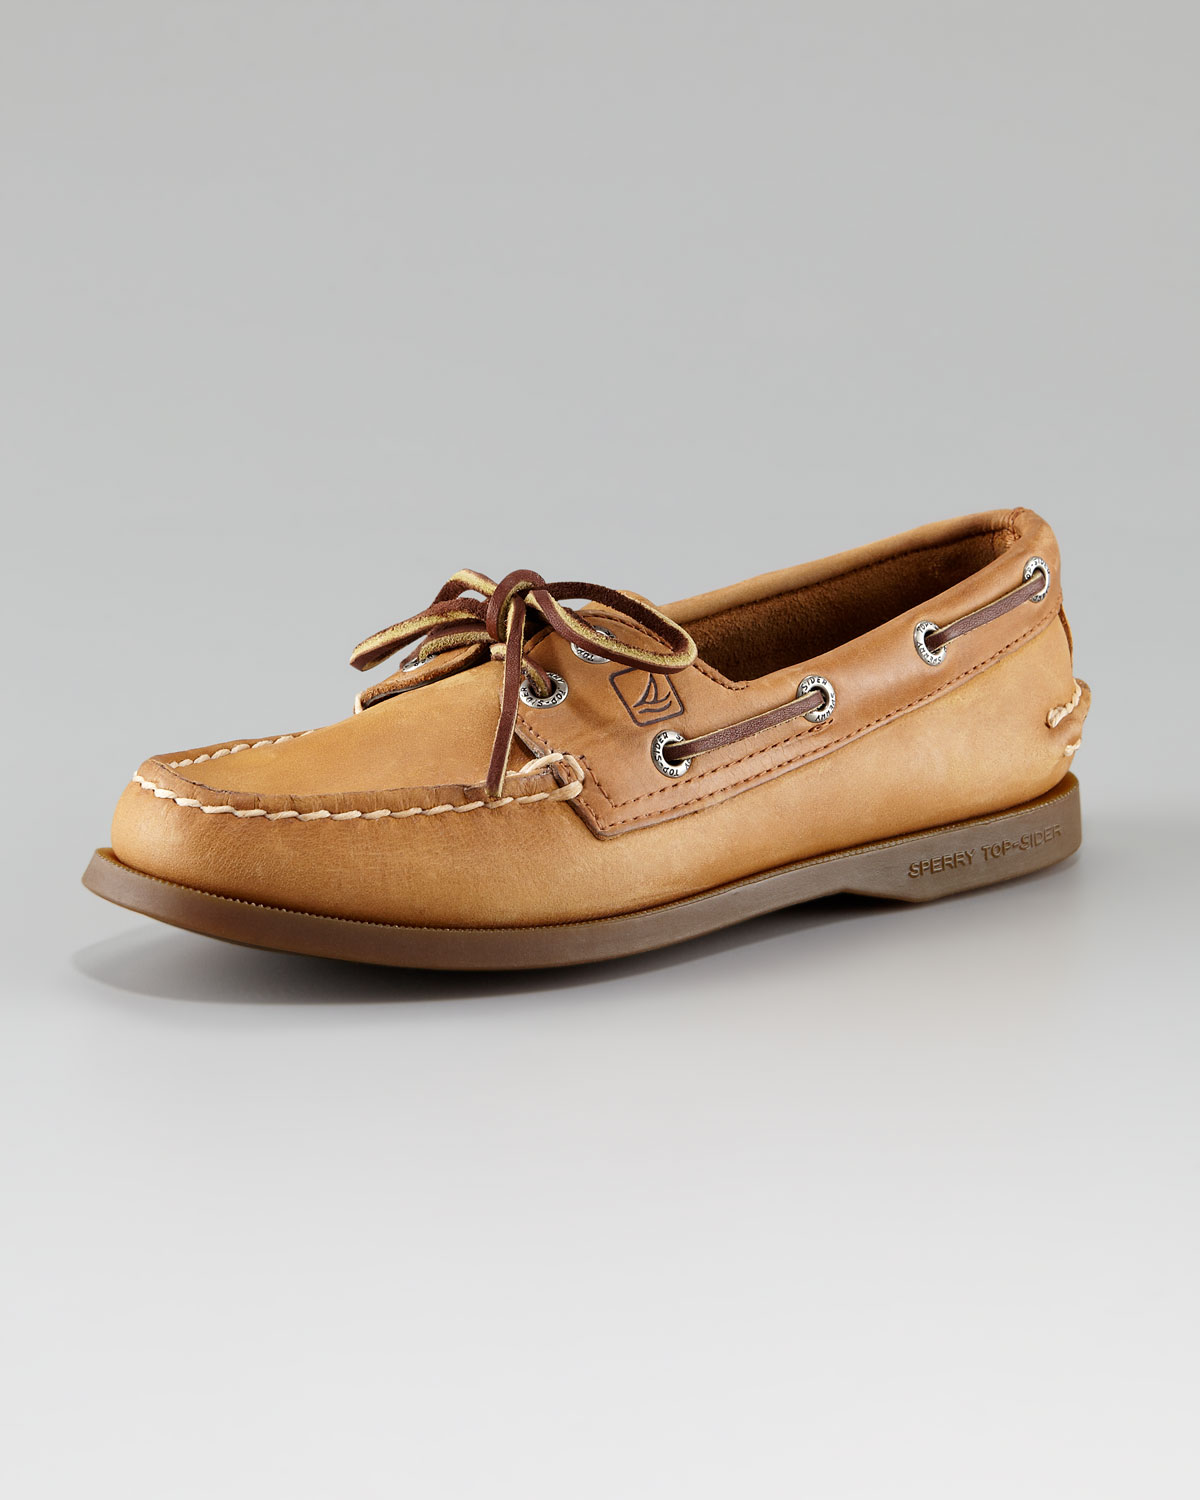 Sperry top sider authentic nubuck boat shoe in brown for Best boat shoes for fishing